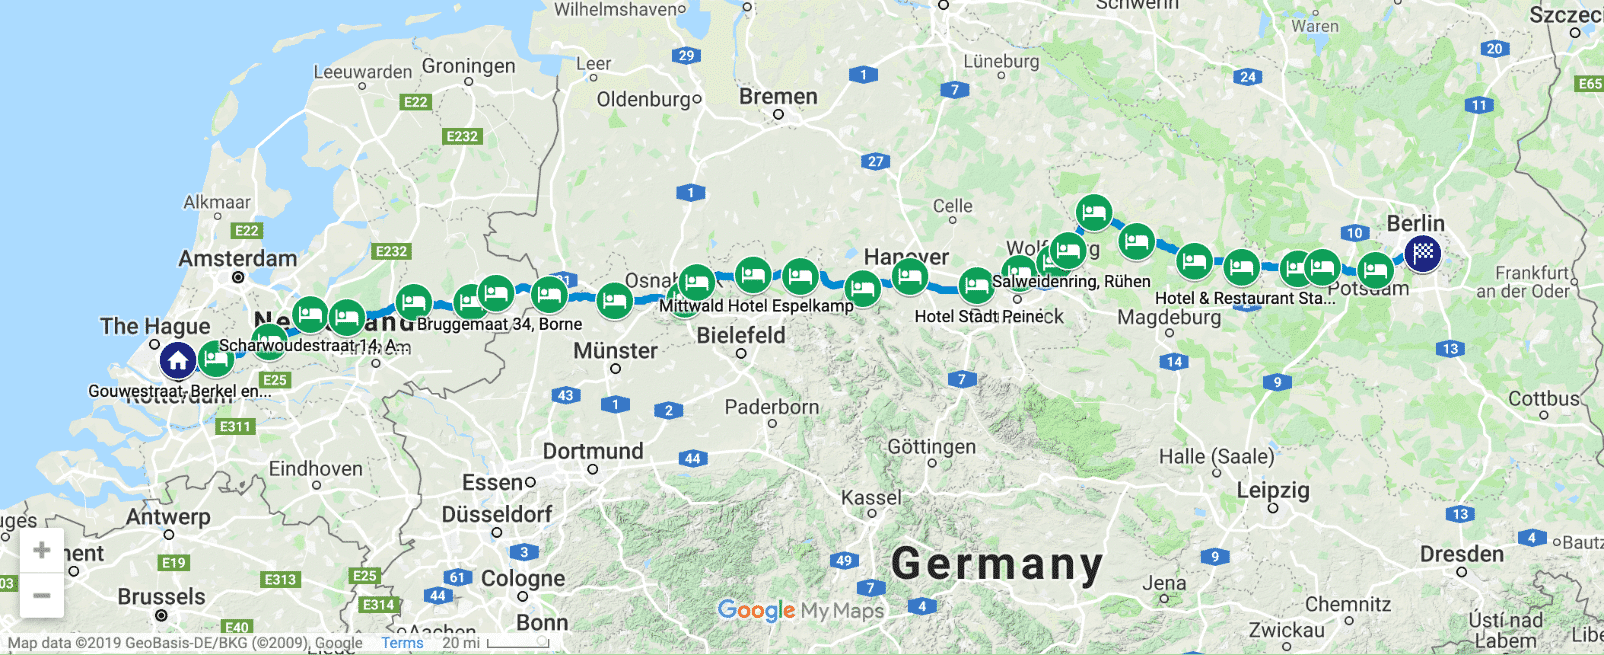 Walk to WordCamp Europe route